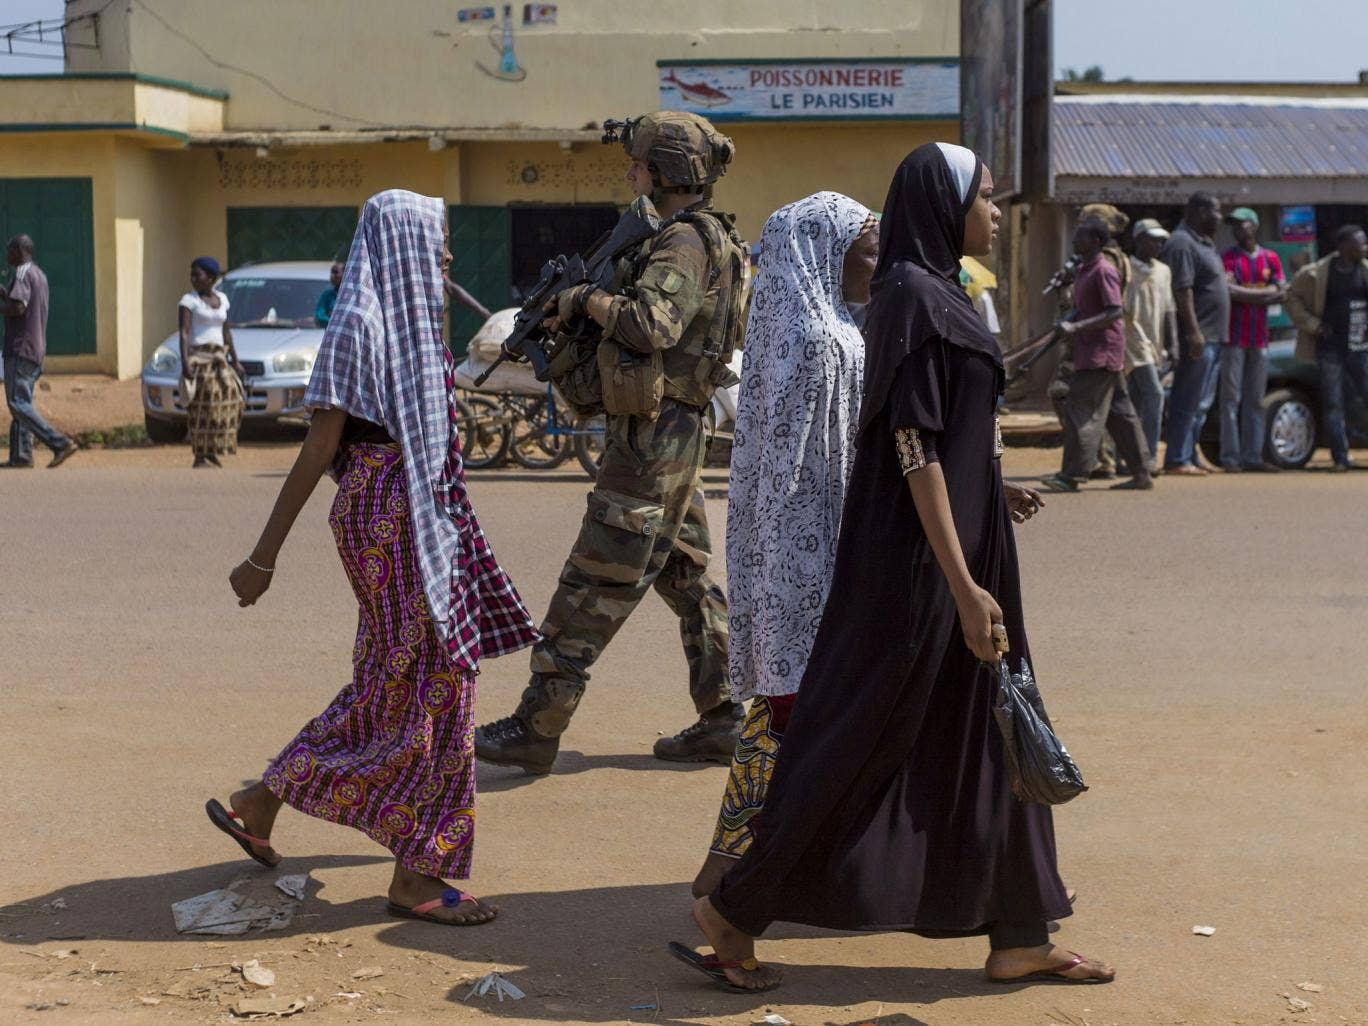 French troops patrol in a street of the Muslim PK-5 district in Bangui